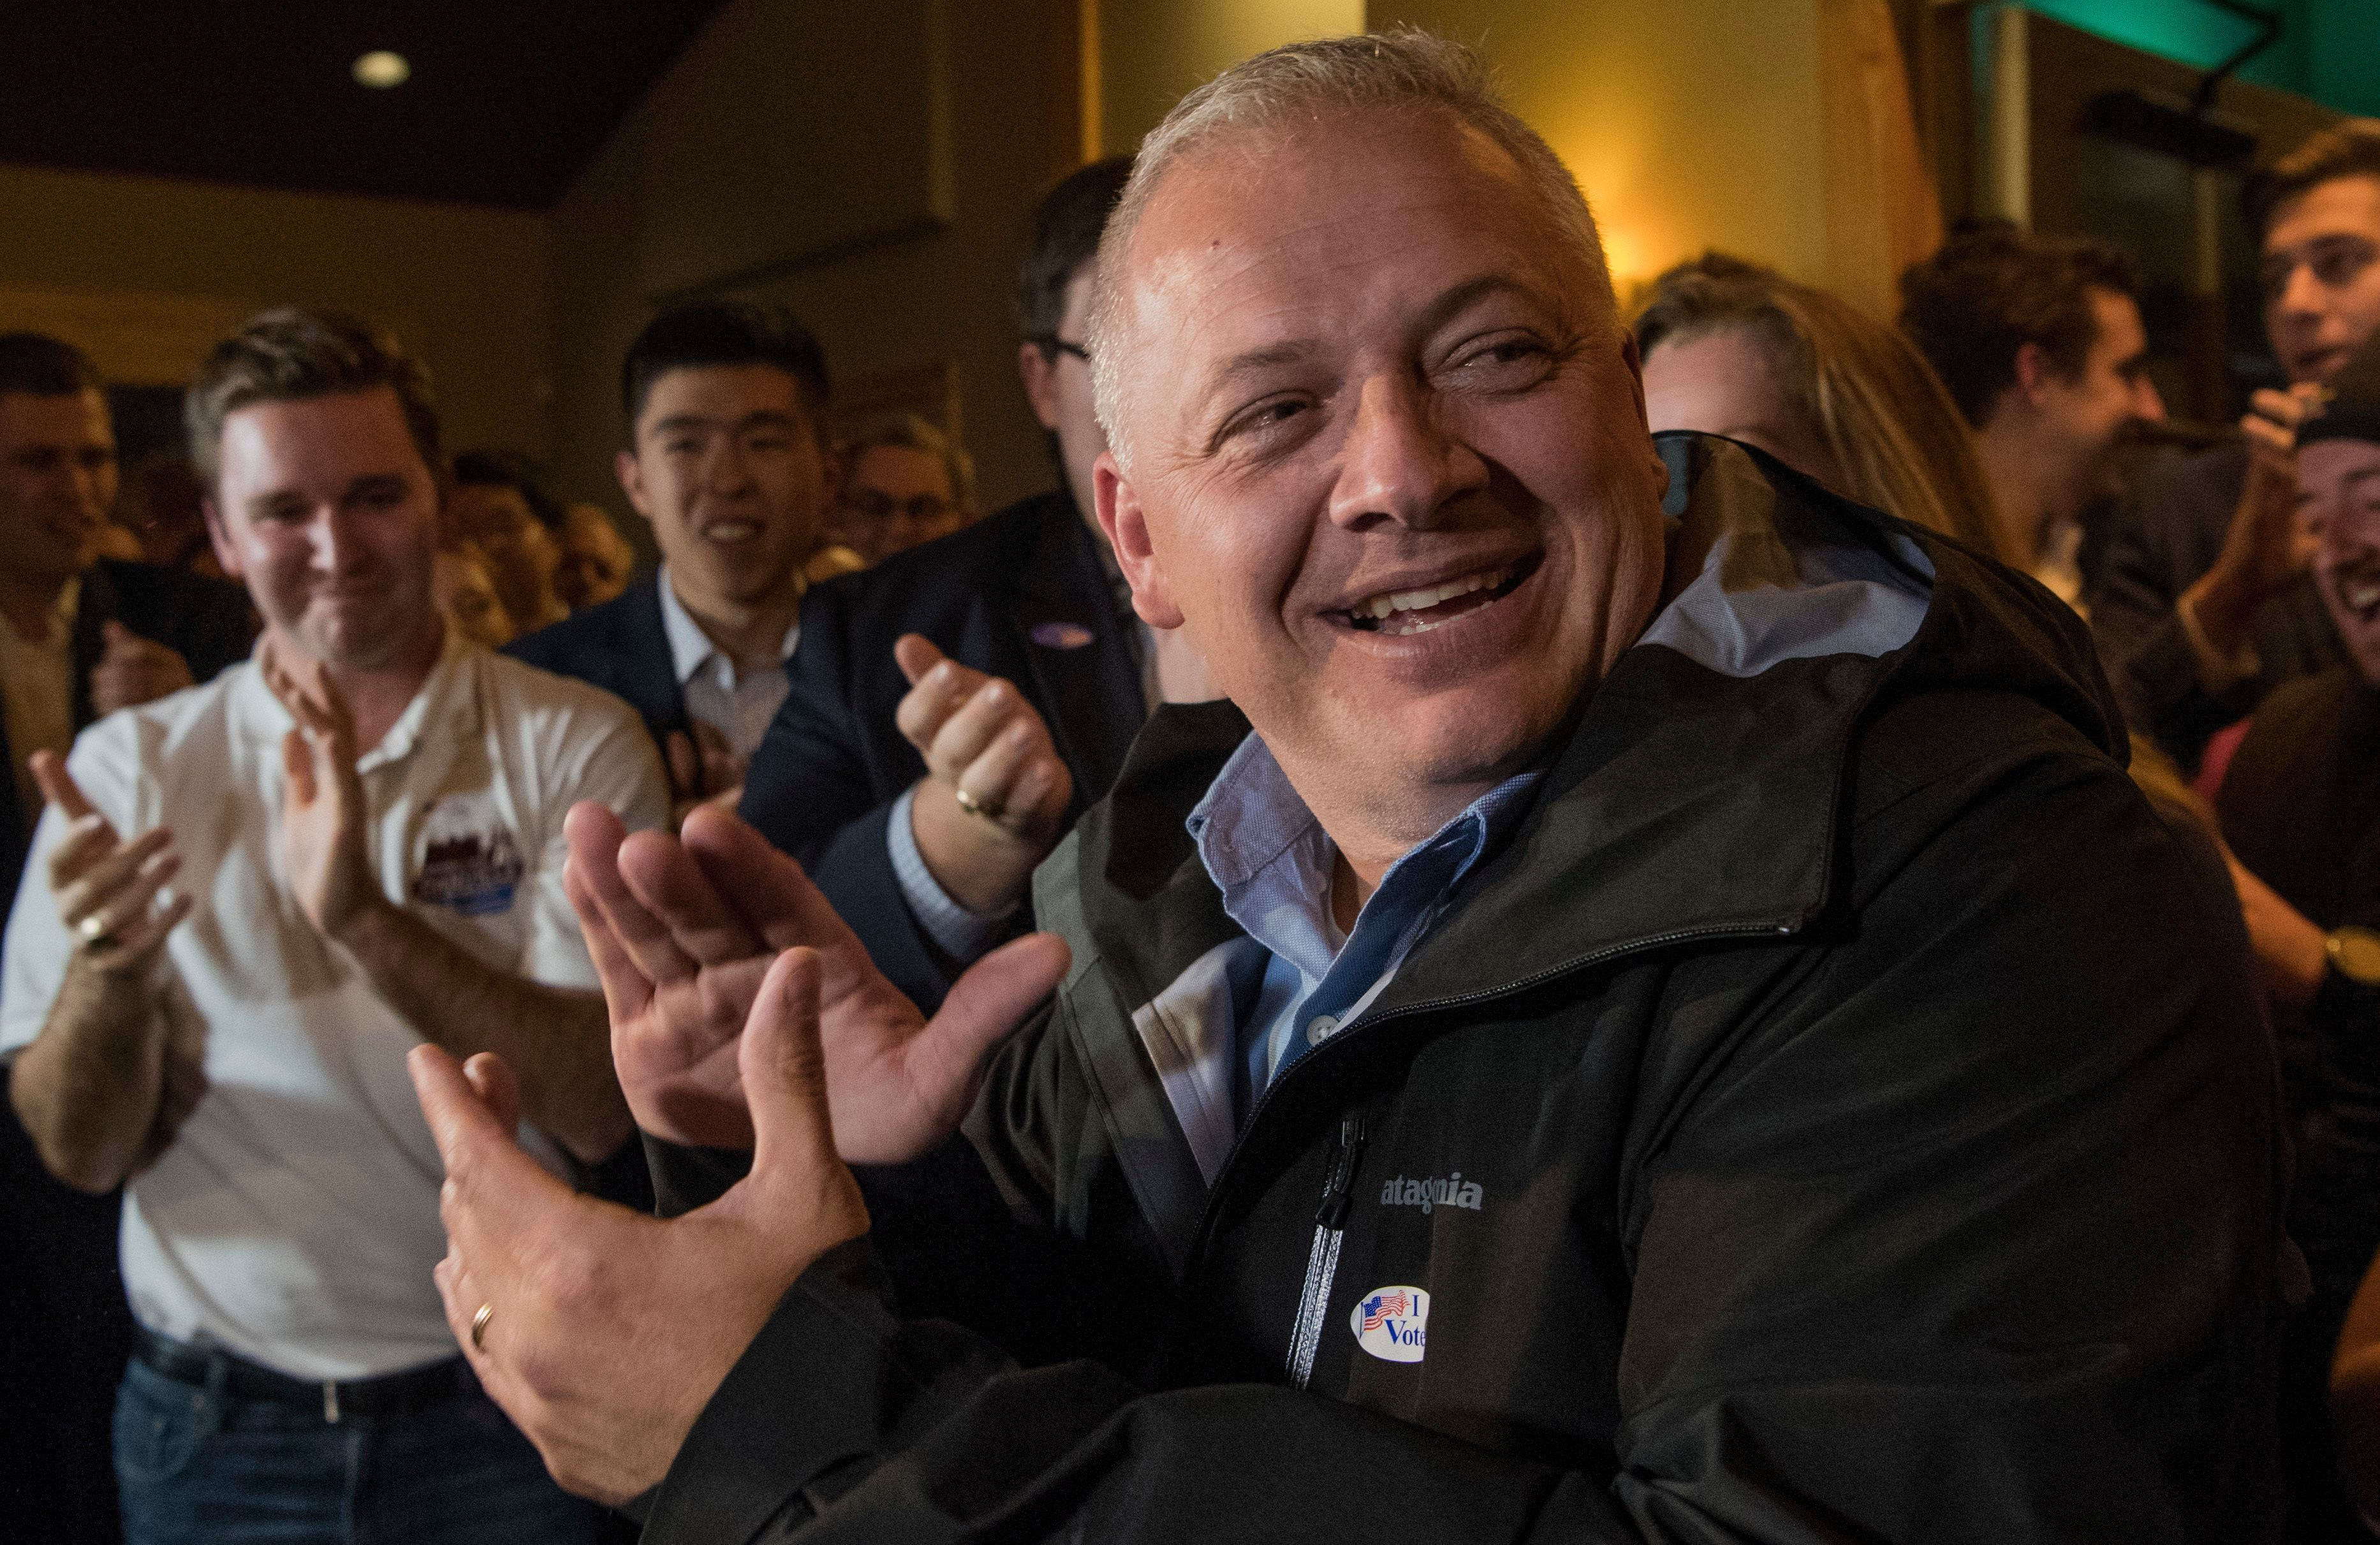 Republican congressional candidate Denver Riggleman claps with the crowd during an election party in Afton, Va., Tuesday, Nov. 6, 2018. (AP Photo/Lee Luther Jr.)